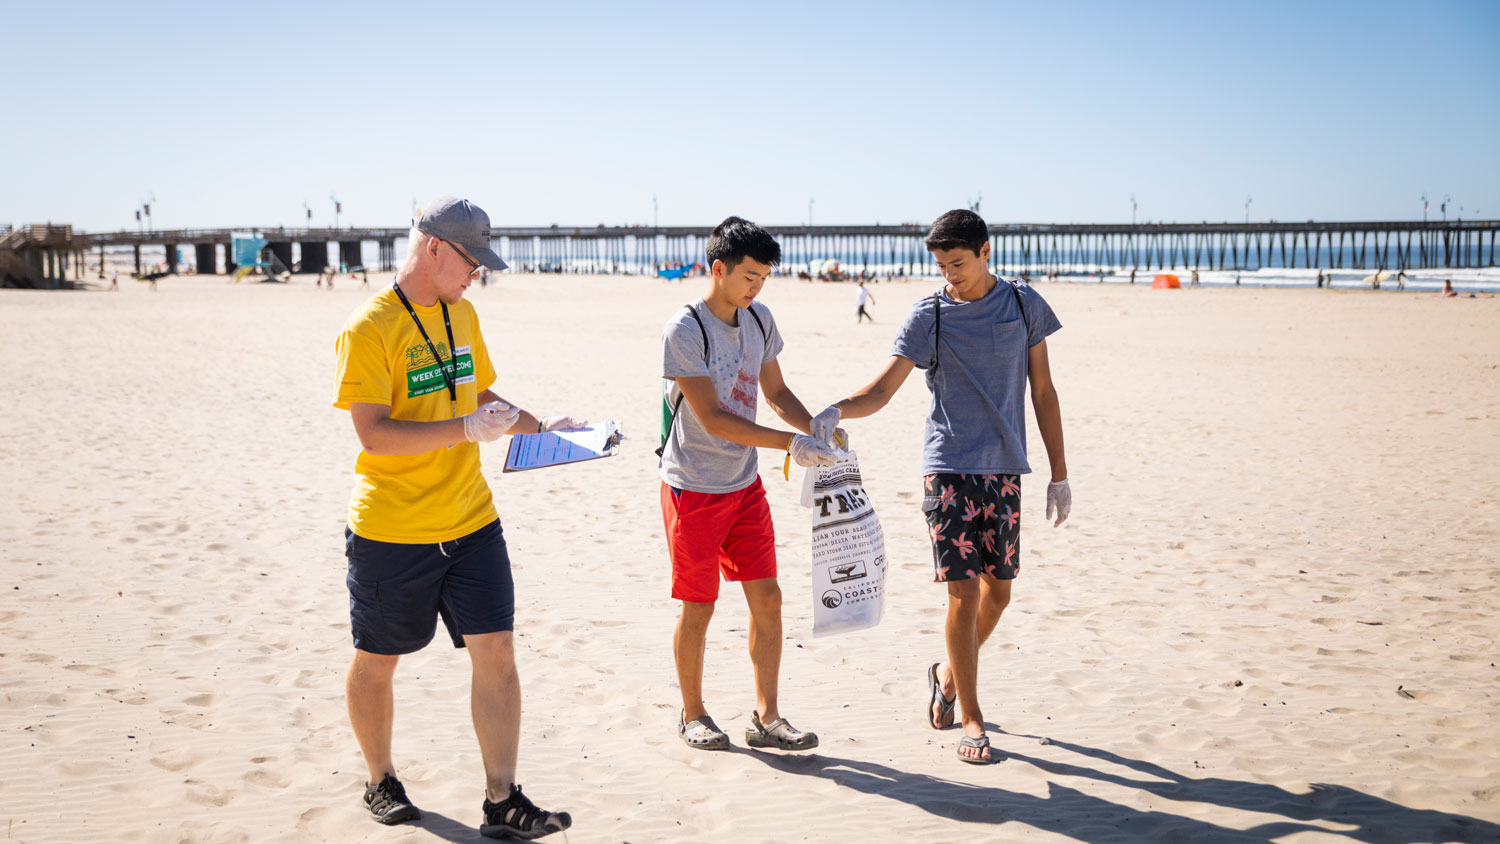 Students participate in a Beach Clean Up at Pismo Beach